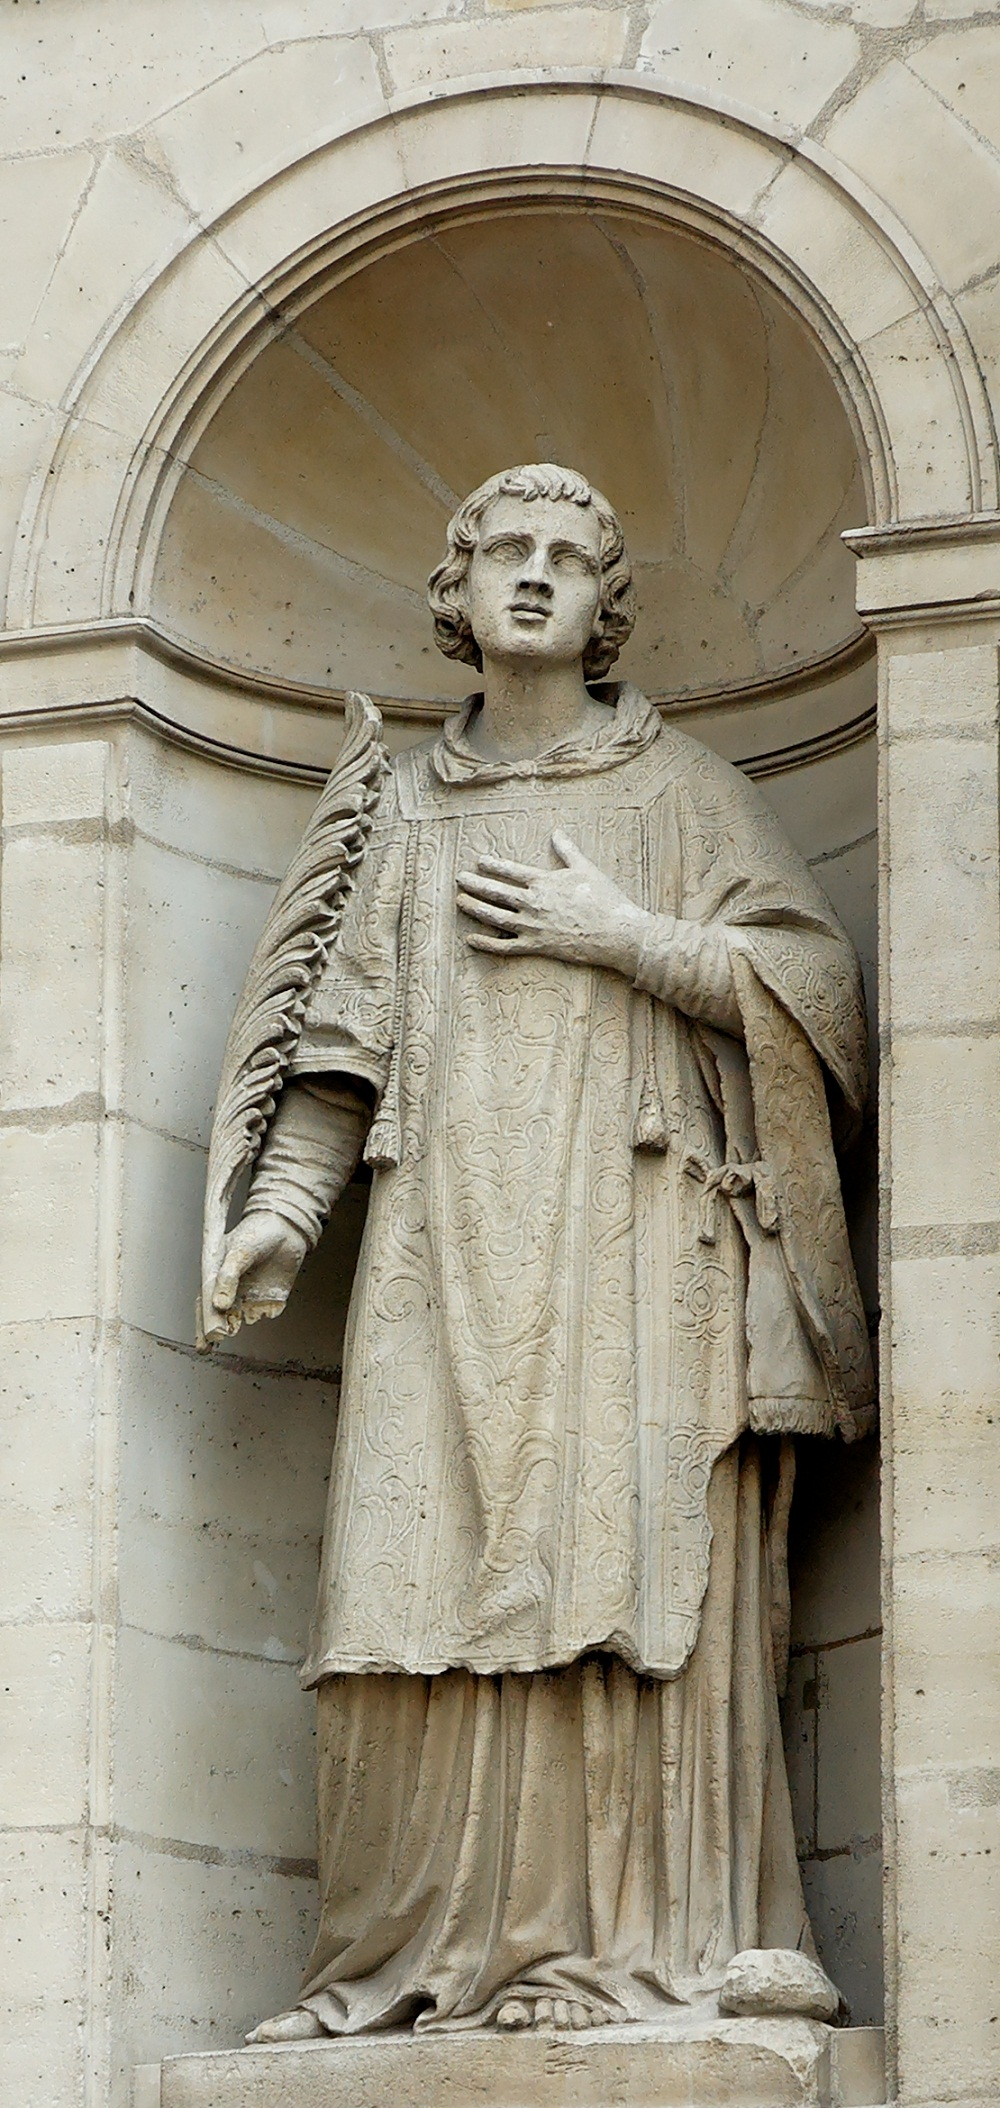 Paris Architecture, France, Statue St Stephen at Saint Etienne du Mont Church